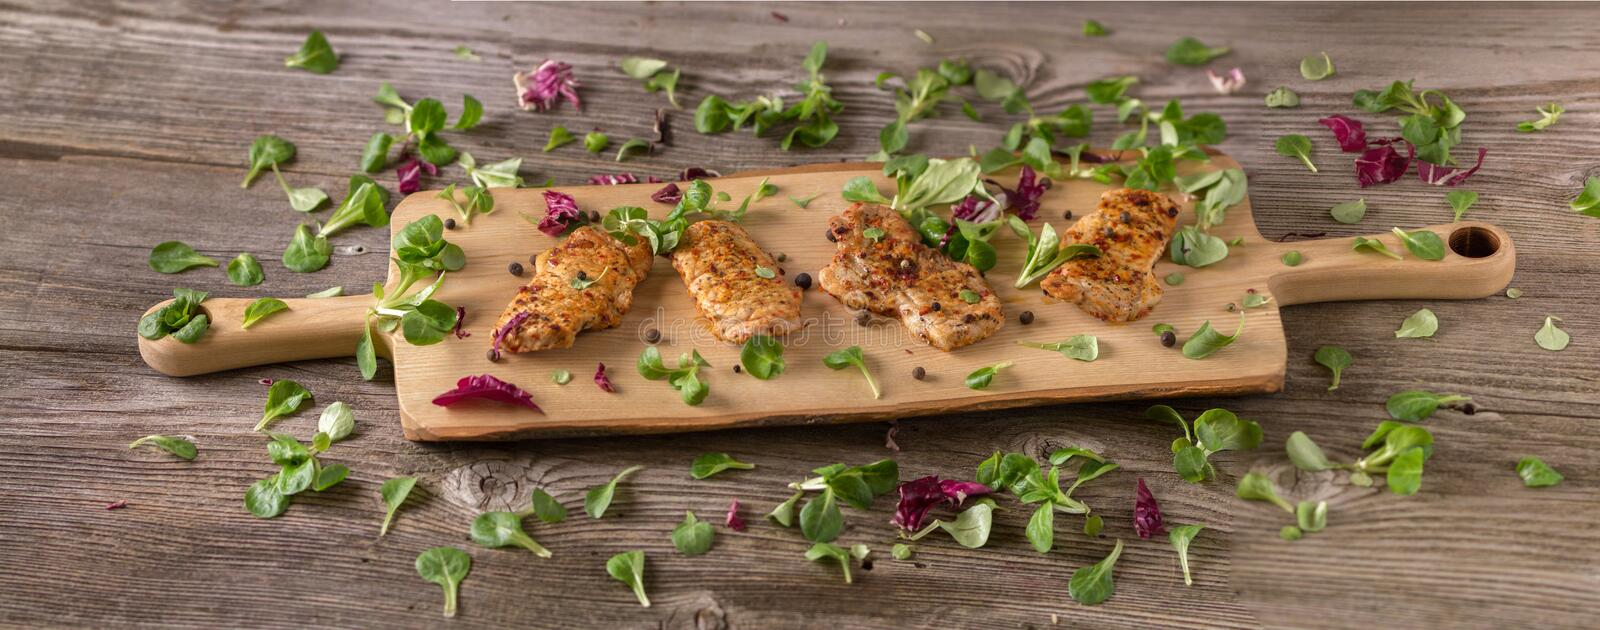 Fresh freshly fried delicious slices of meat on a wooden board with fresh herbs. Appetizing steaks on a wooden board. Banner for t. Fresh freshly fried delicious royalty free stock images